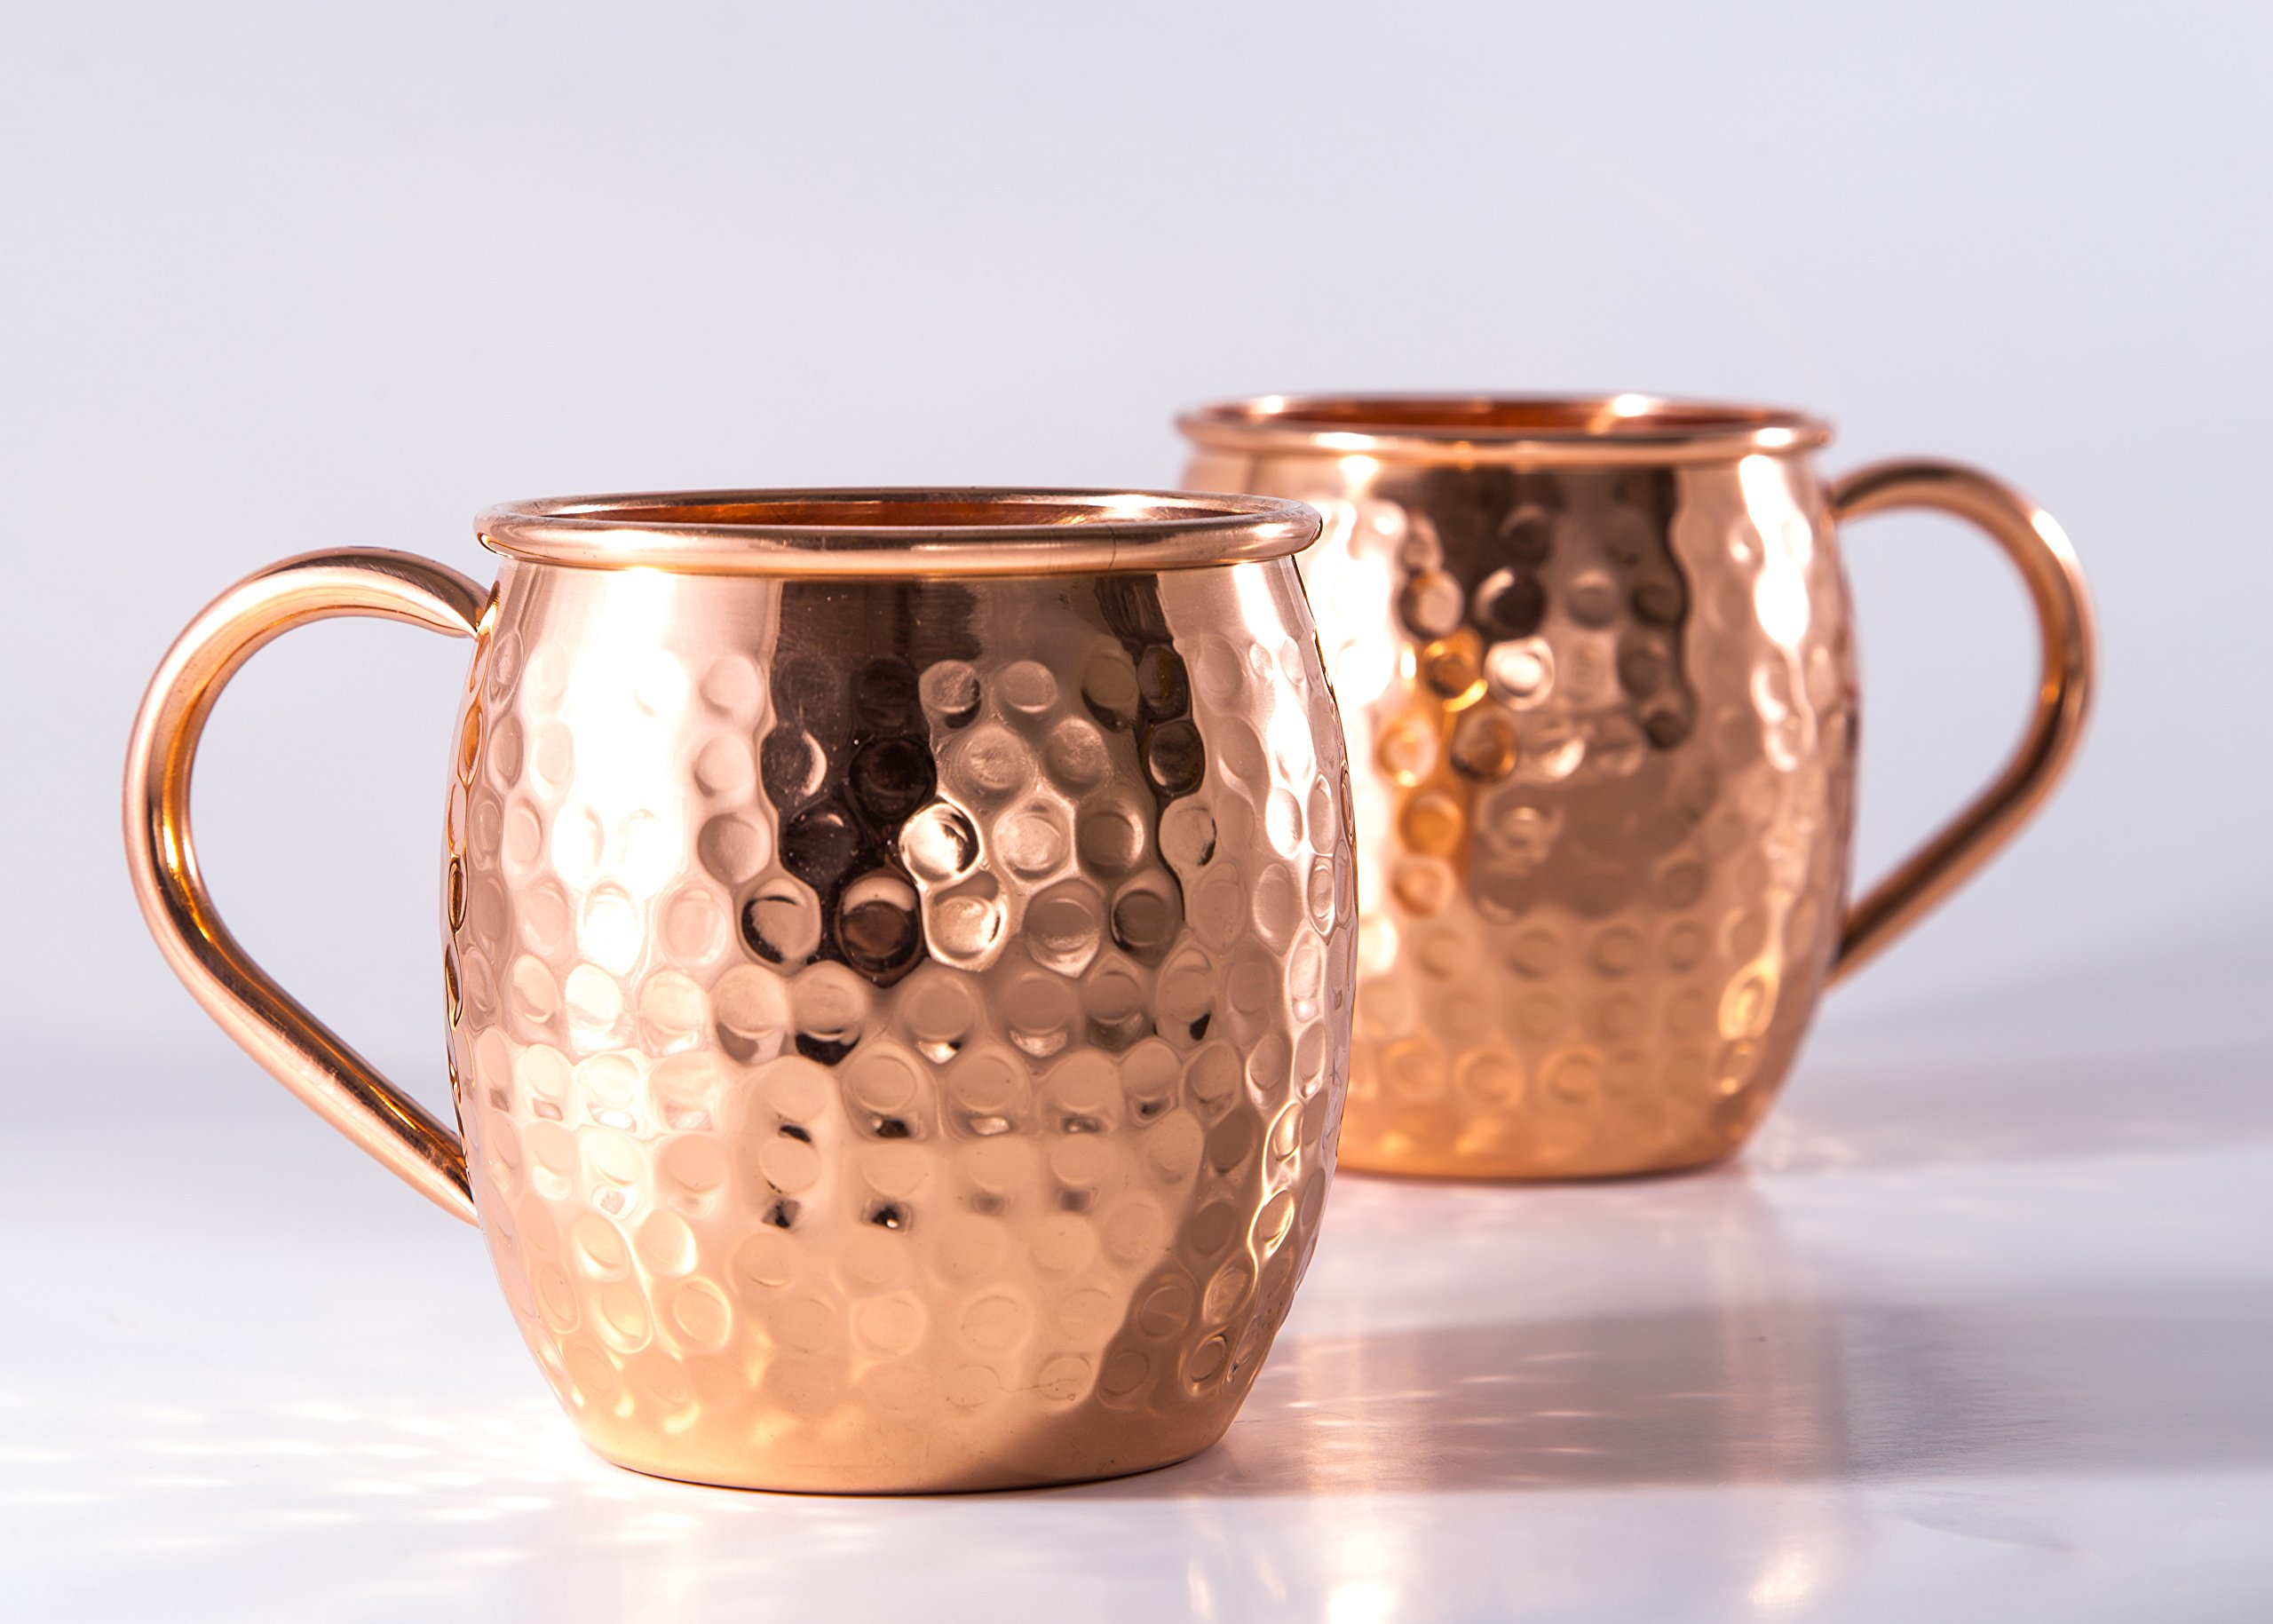 Moscow Mule Copper Mugs - Set Of 2-100% Handcrafted Pure Solid Copper Mugs -Our 16 oz Gift Set Makes A Great Gift Set For Men And Women - Good For Beer & Ginger Beer Cocktails